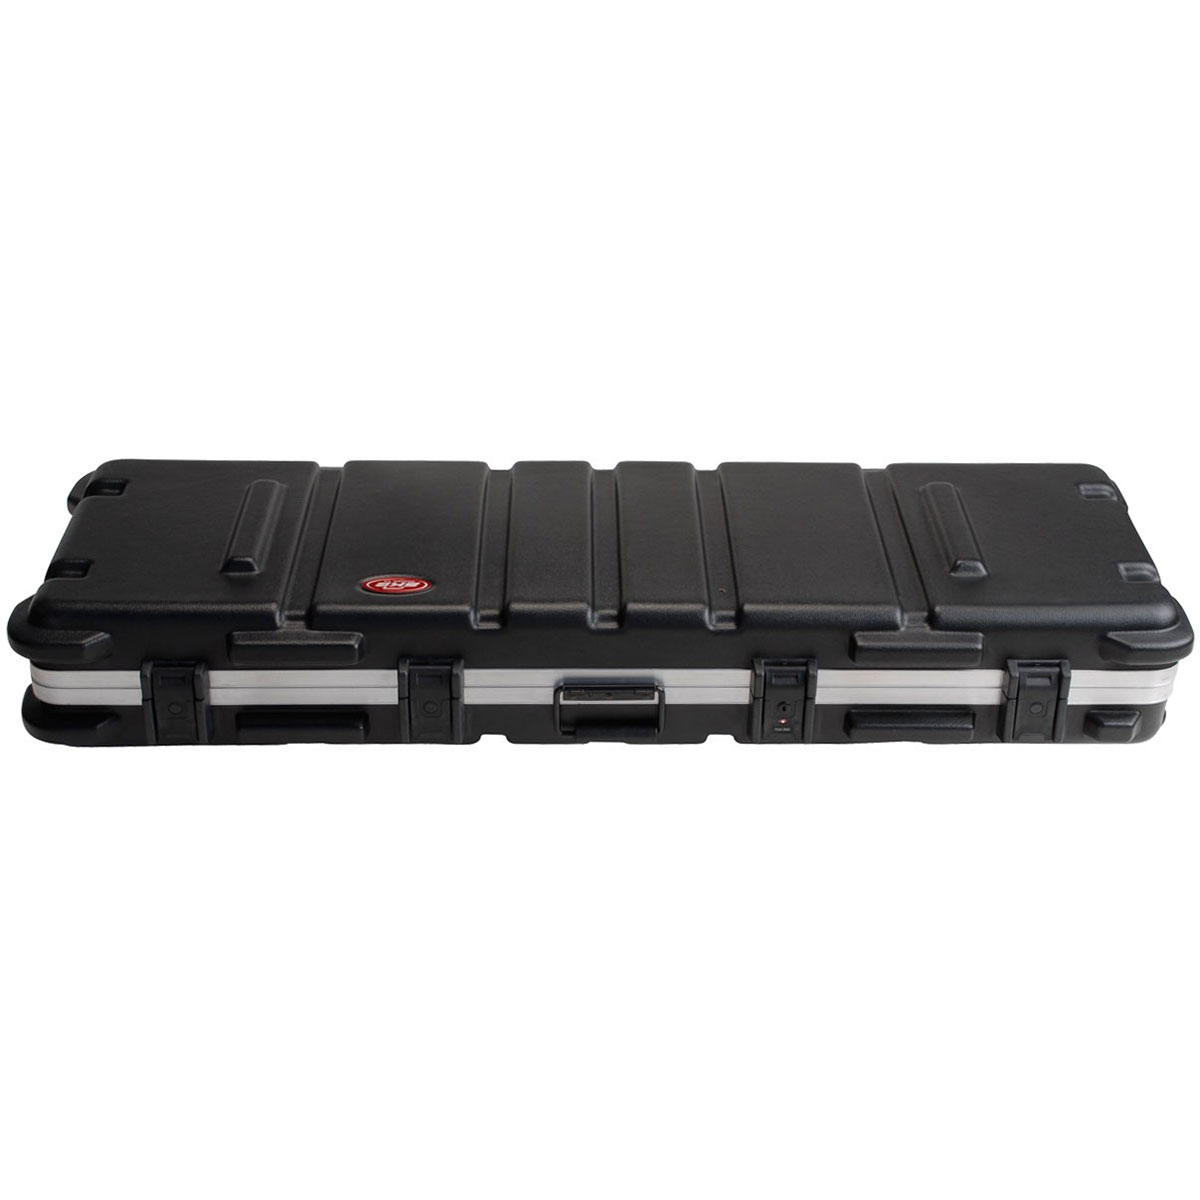 SKB 61-Note ATA Keyboard Case with Wheels and TSA Locking Trigger Latch